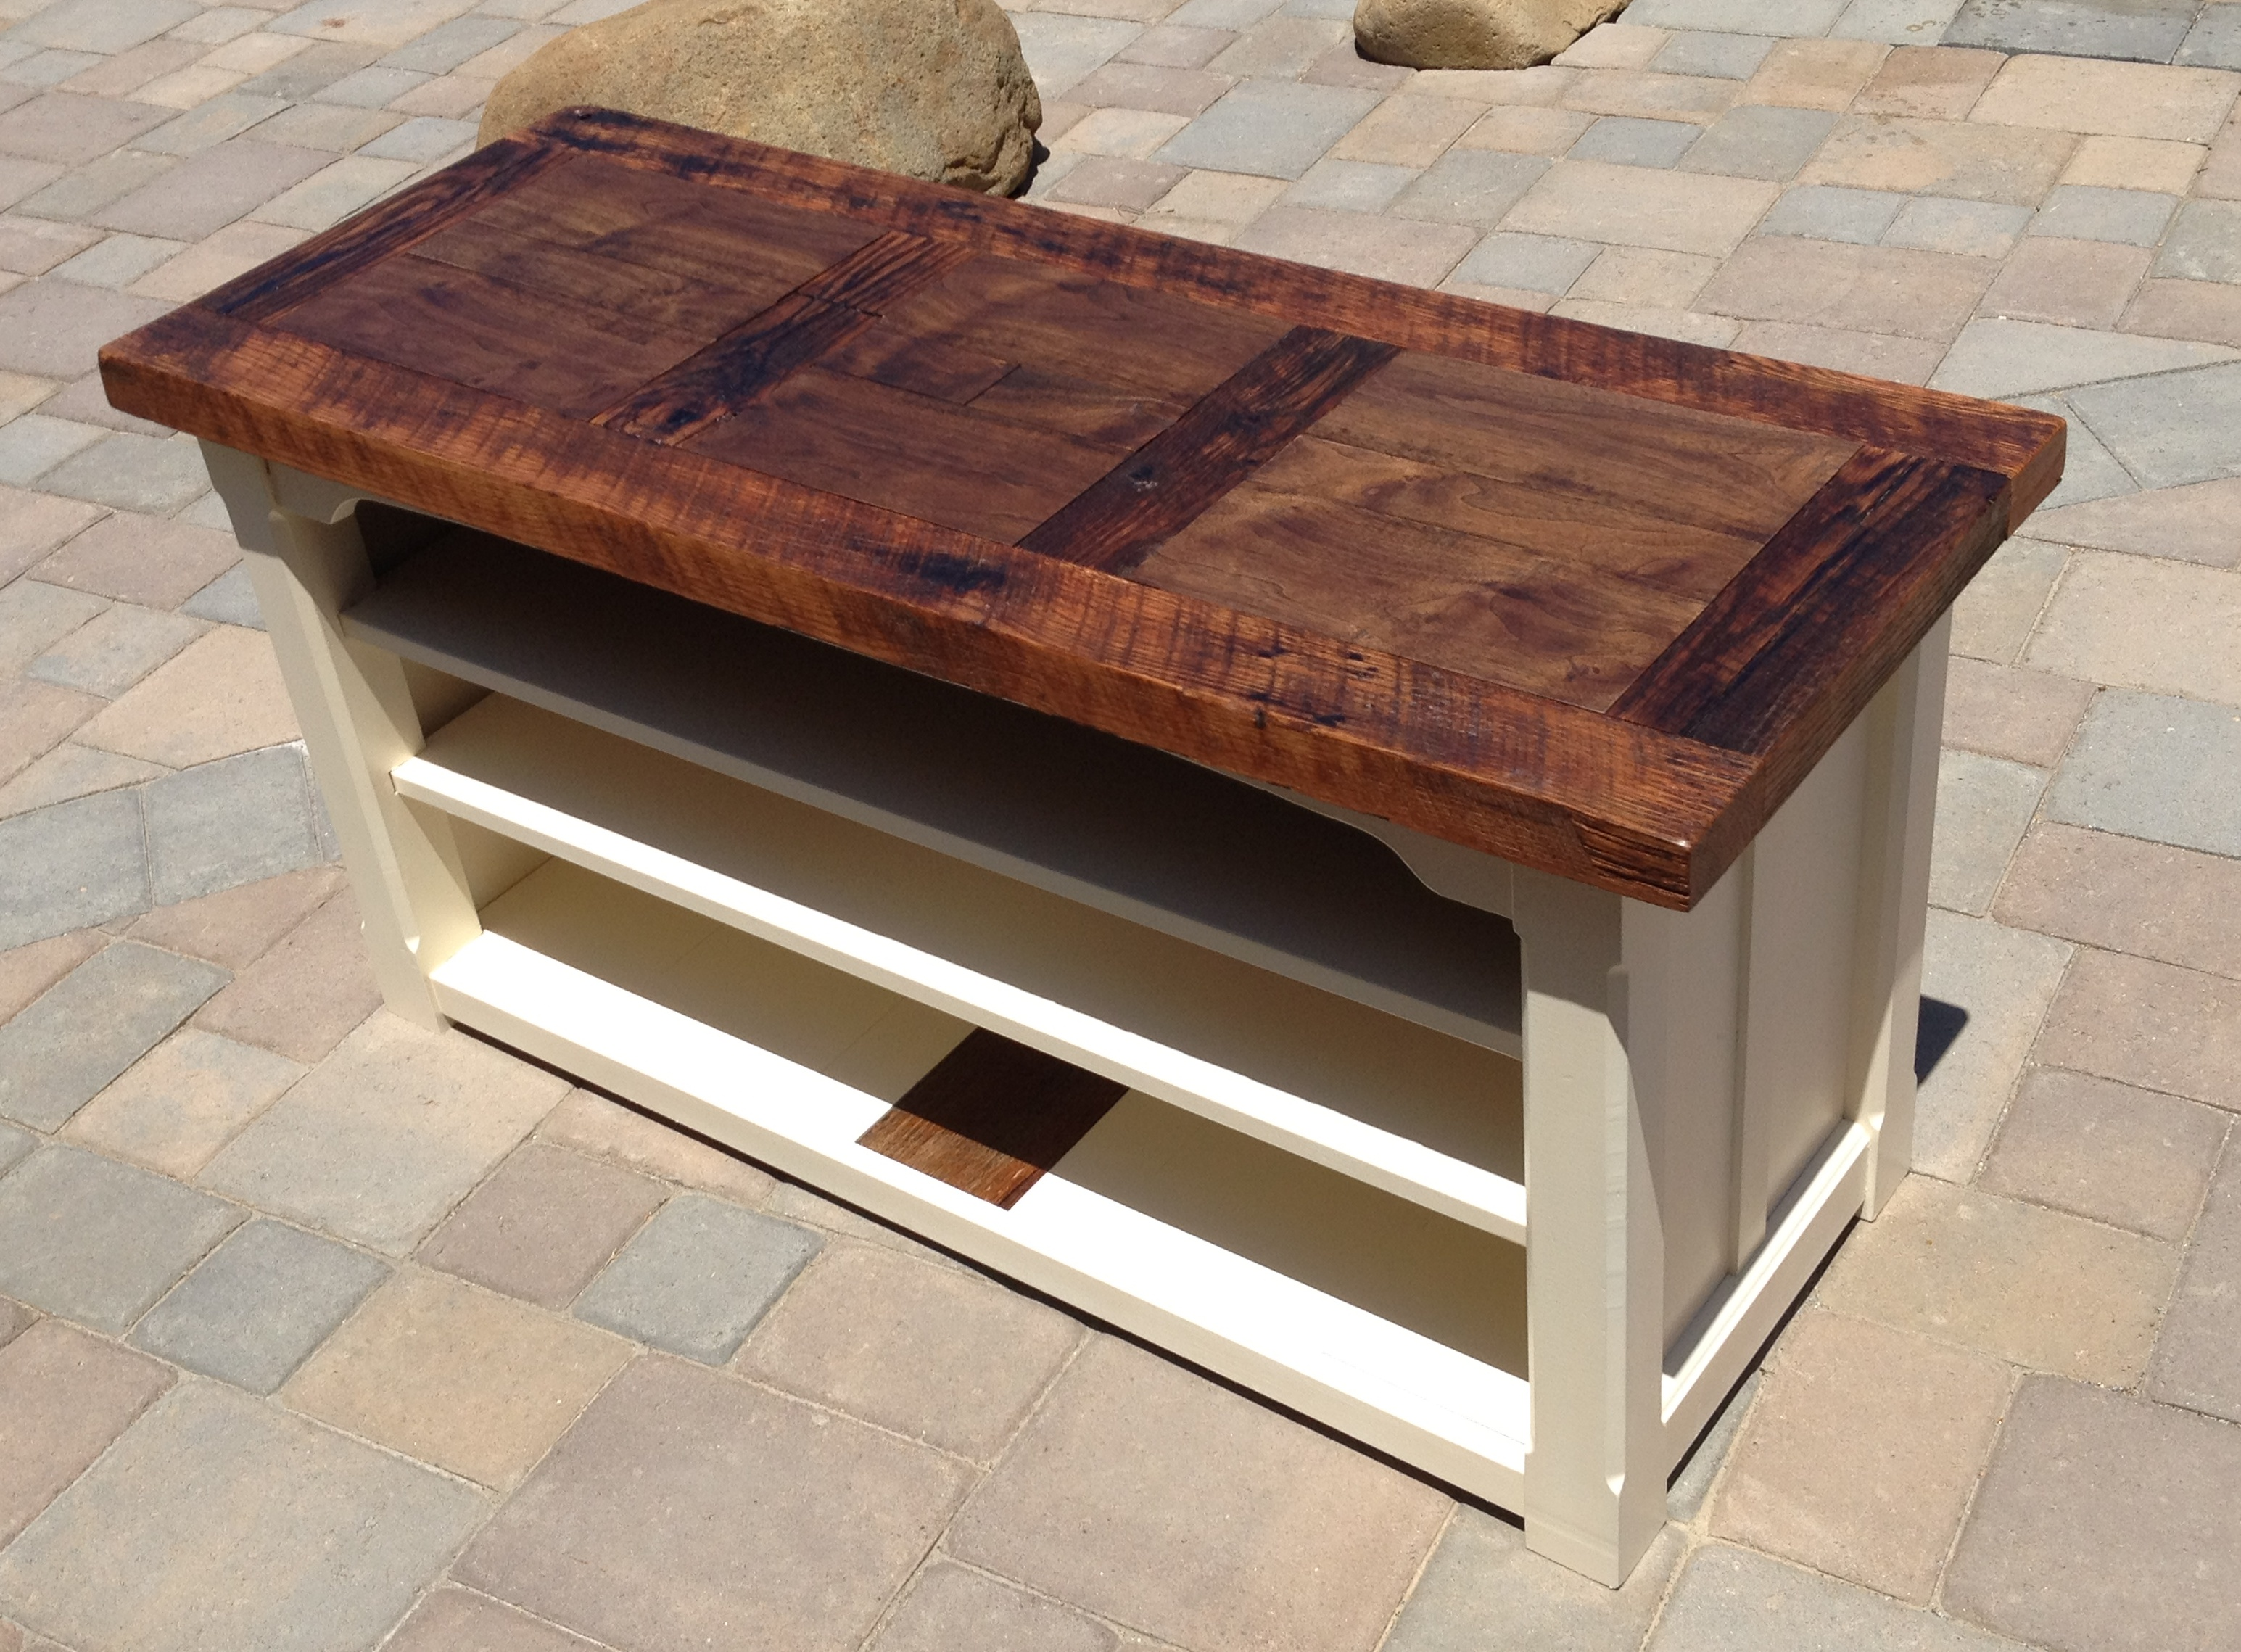 barnwood table the coastal craftsman reclaimed barn wood end tables chew proof dog coffee cover ashley furniture living room drawer flip top console ceramic accent metal with